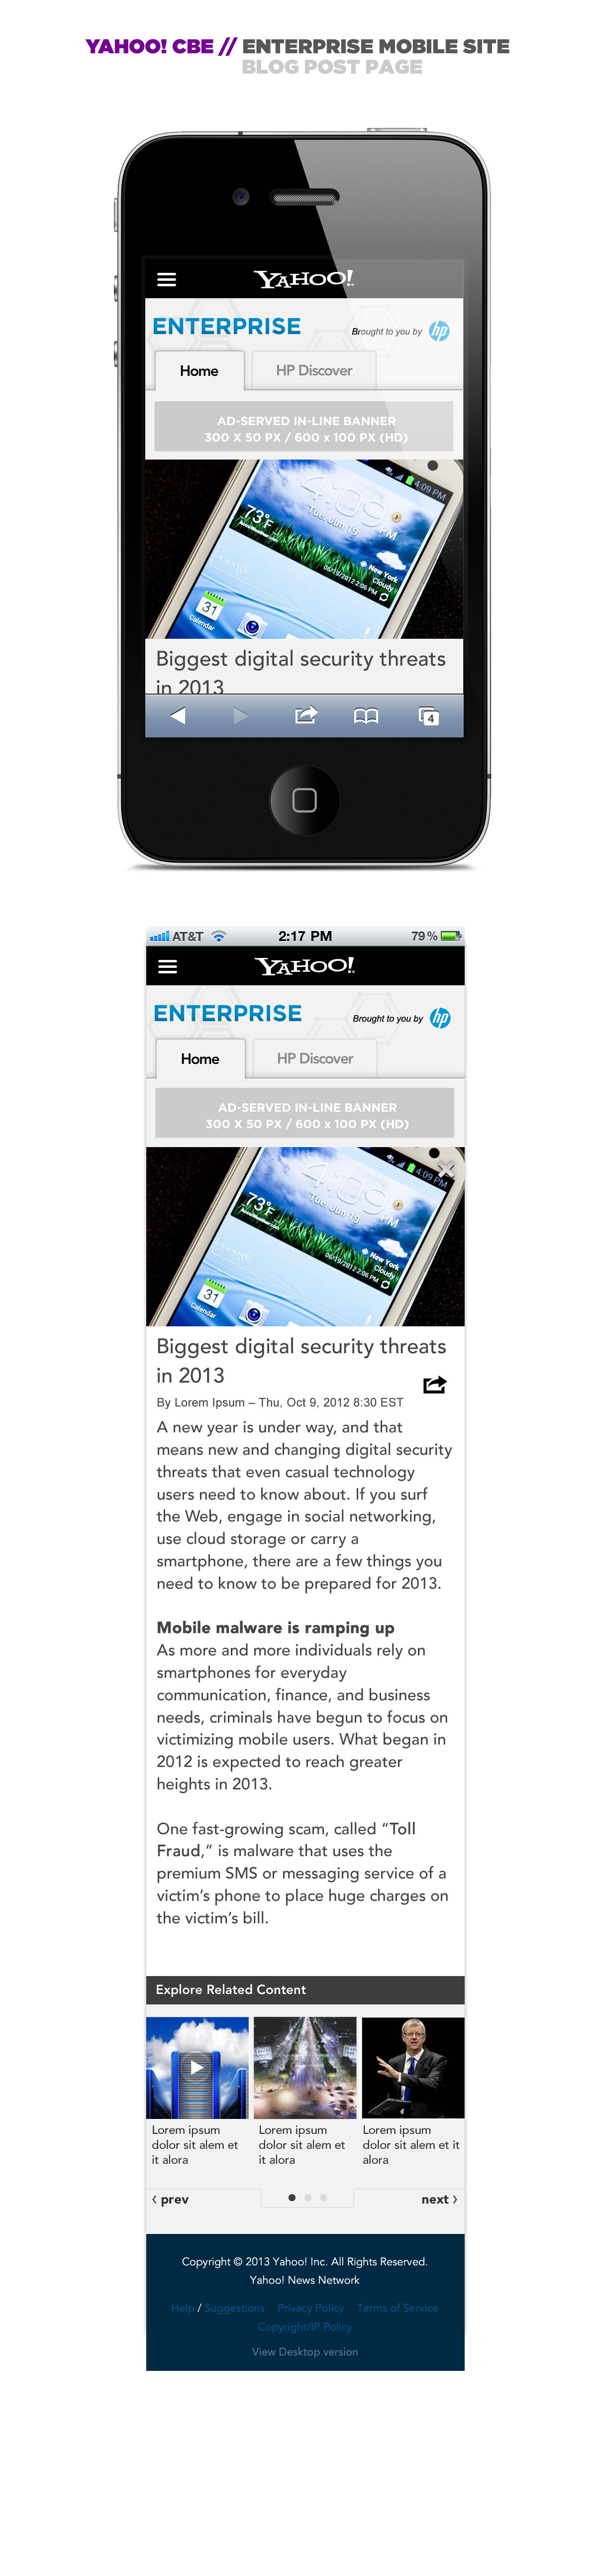 Enterprise_Mobile_hpdiscover-blogpost.jpg